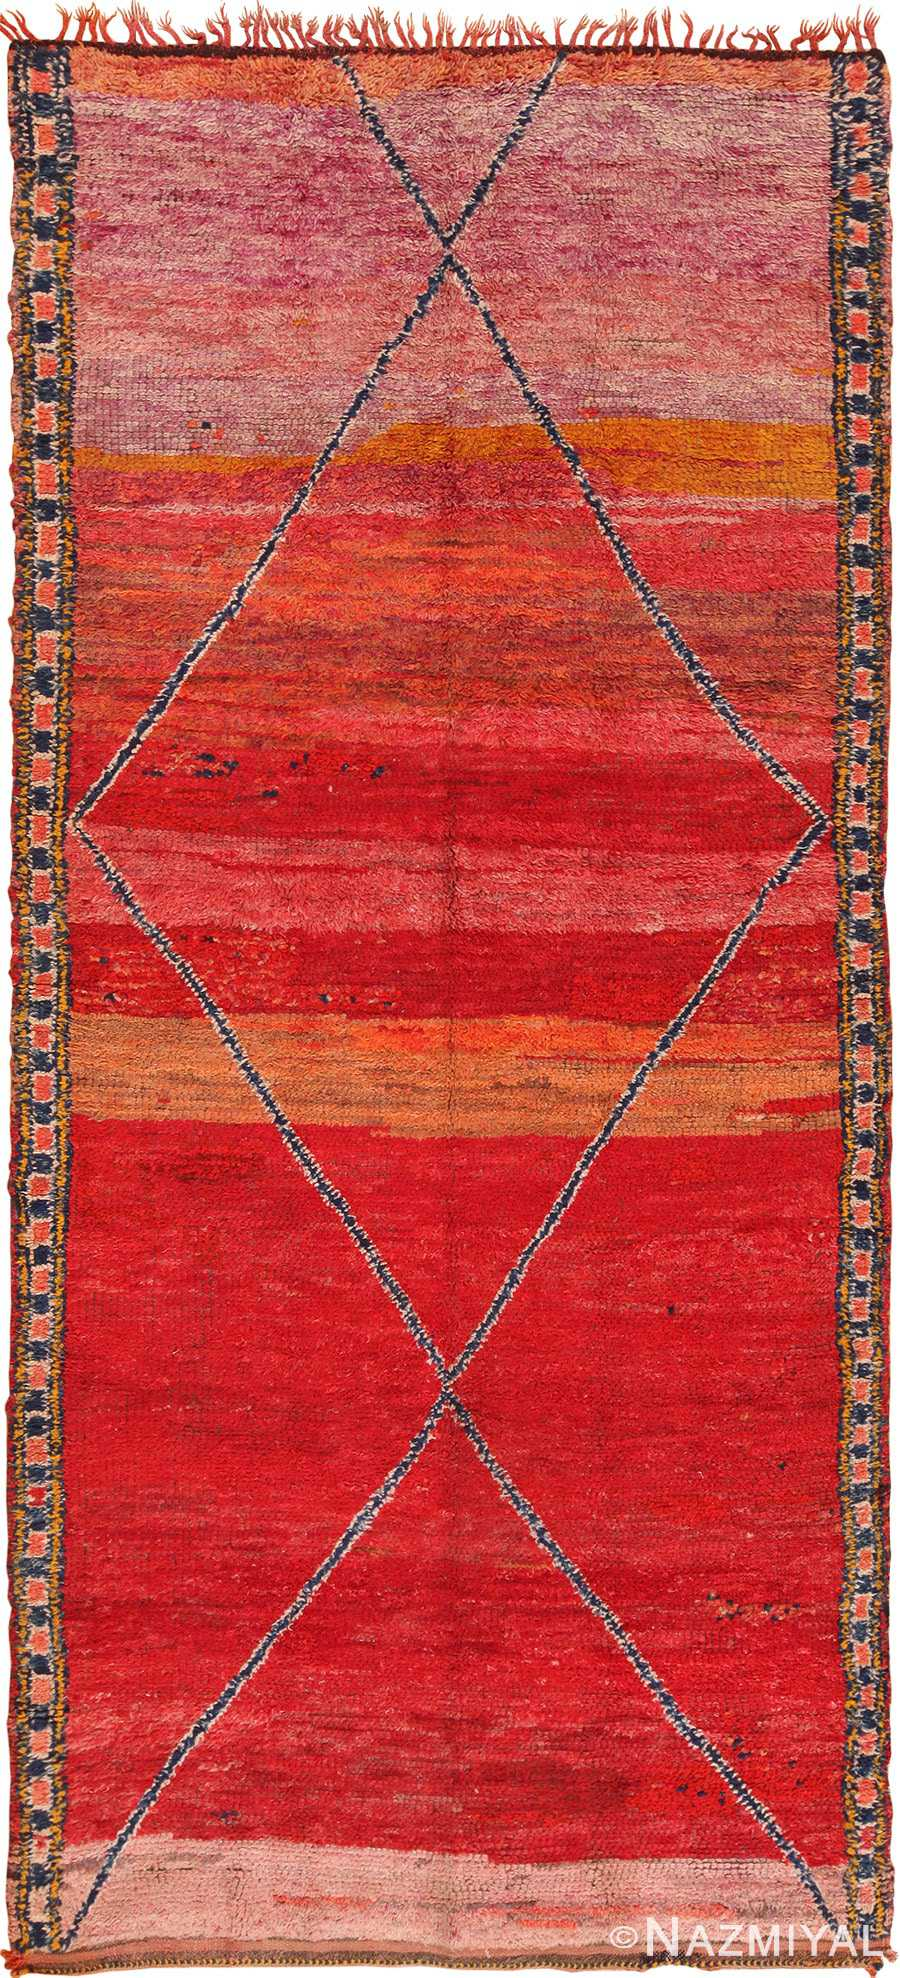 Full view Antique Moroccan rug 70089 by Nazmiyal